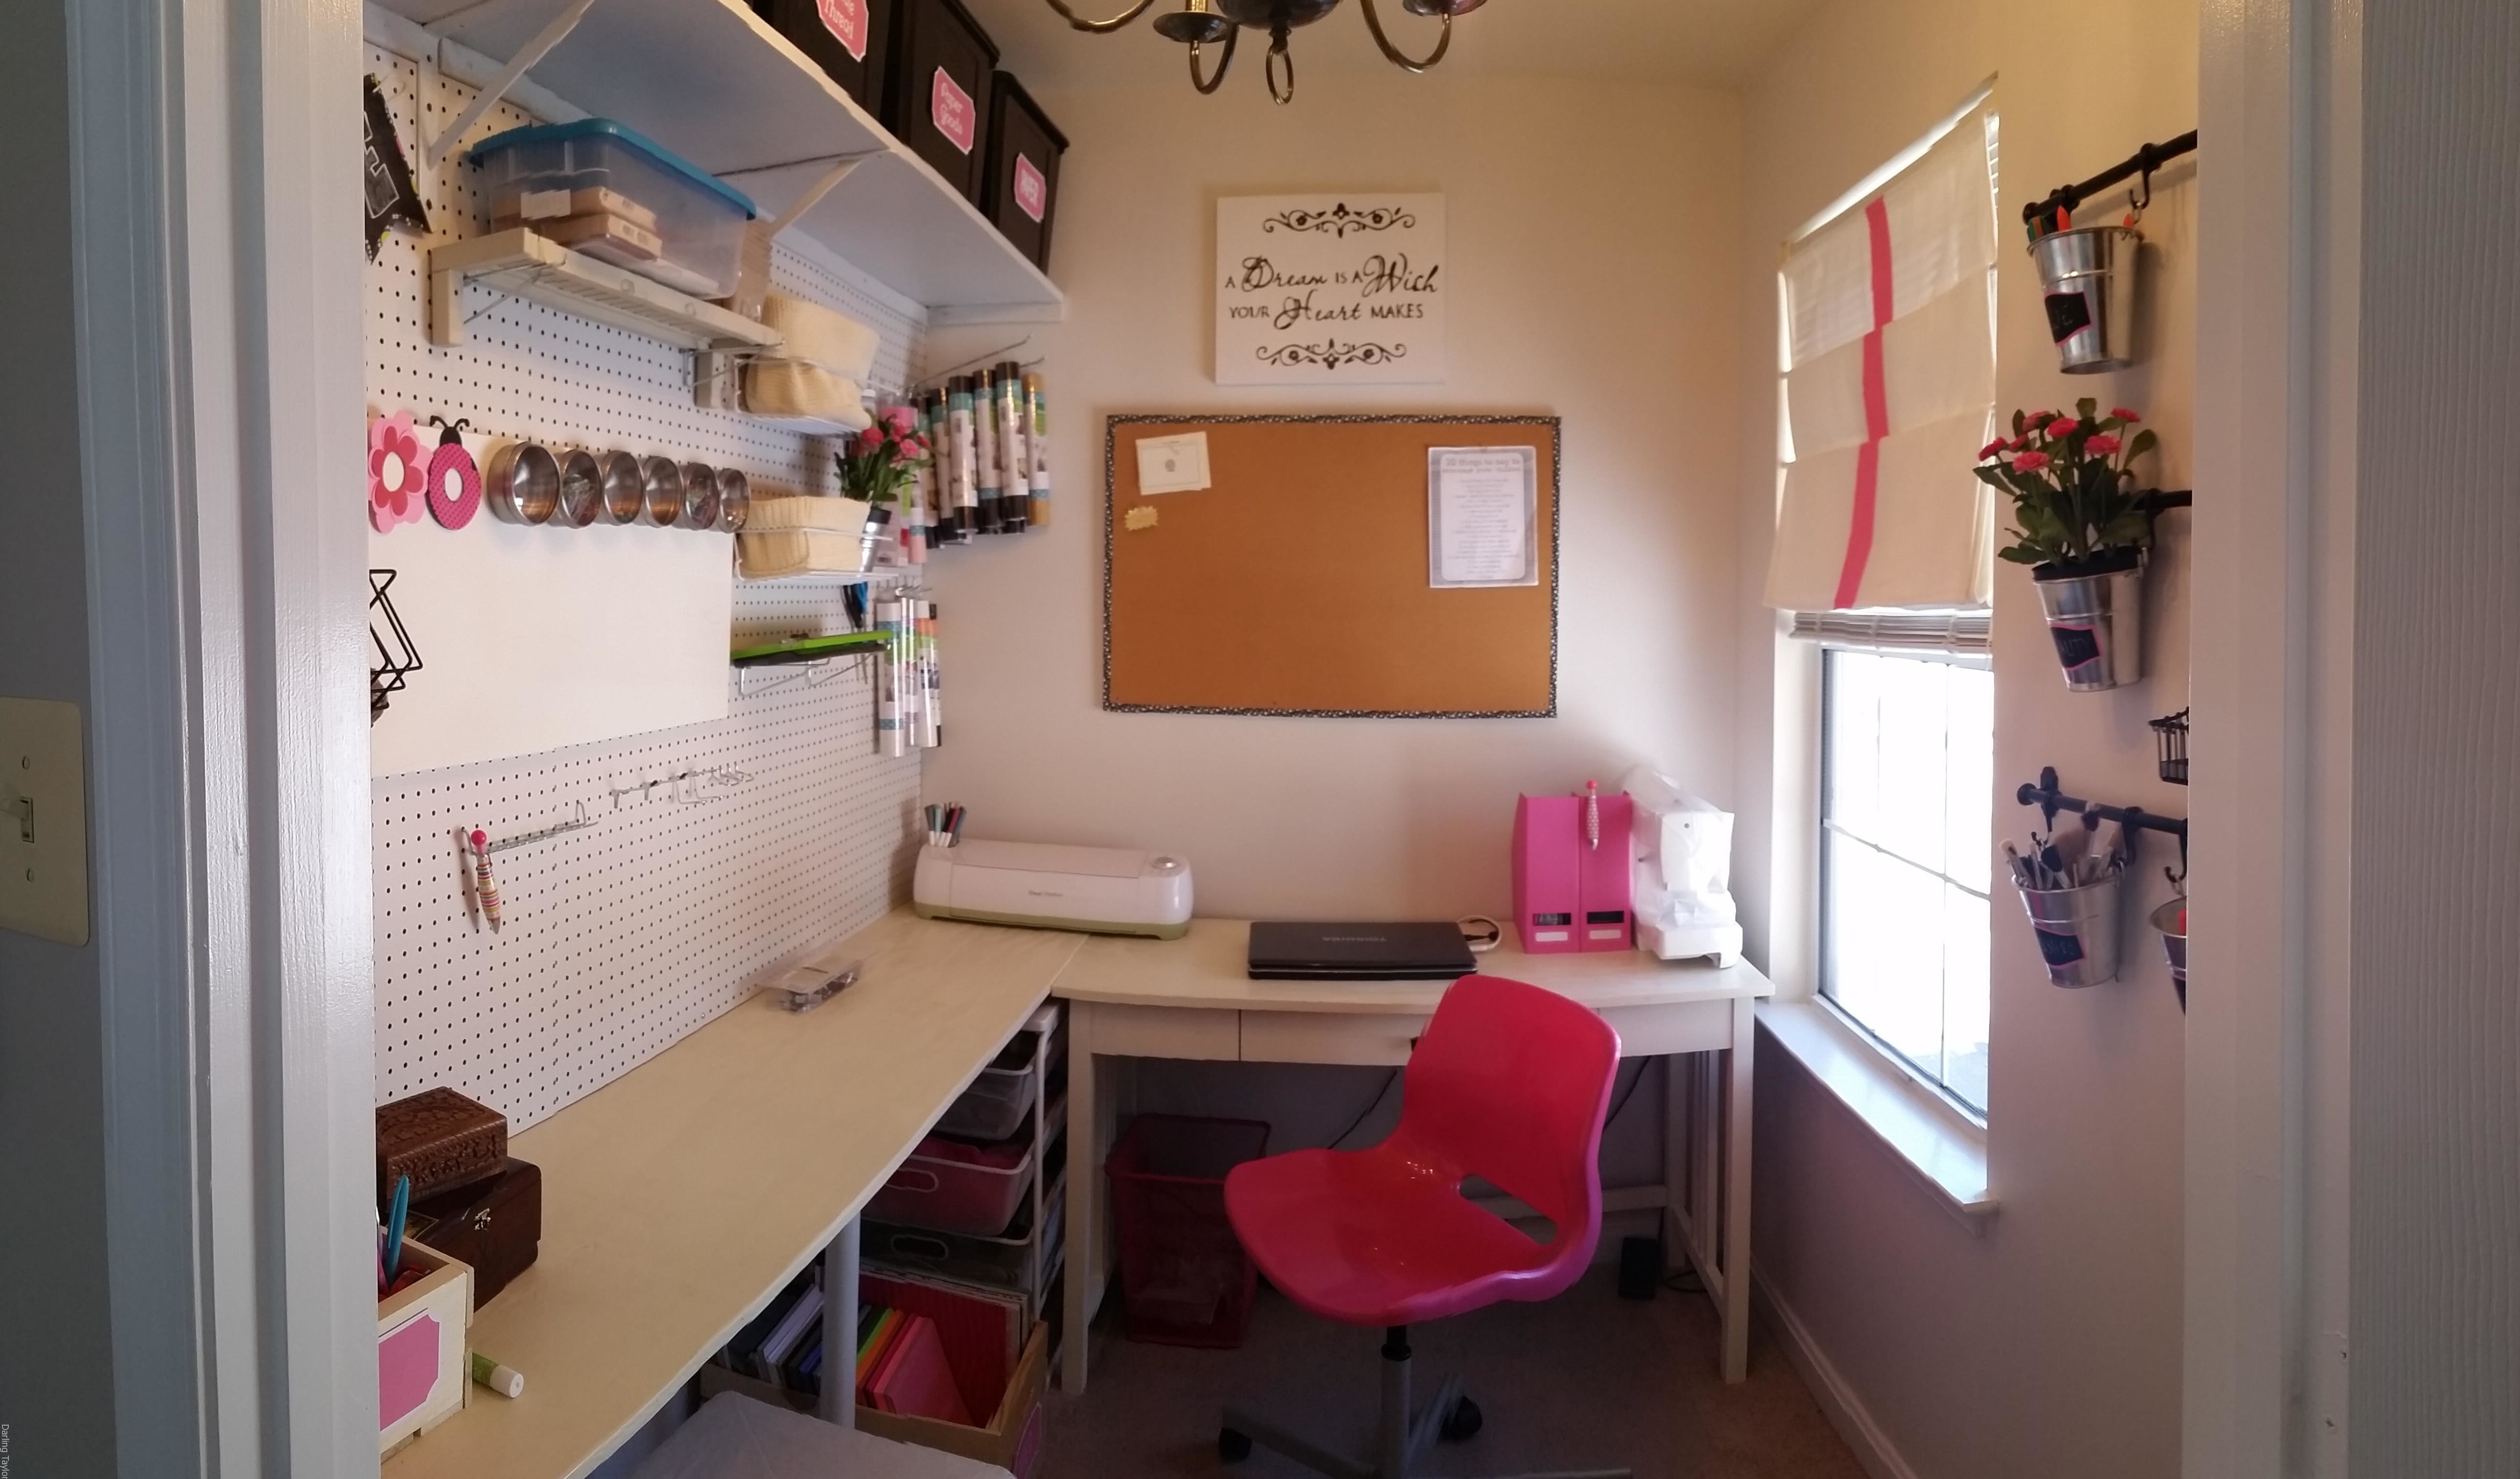 How To Turn A Closet Into A Craft Room My Craft Room Reveal Simple Made Pretty